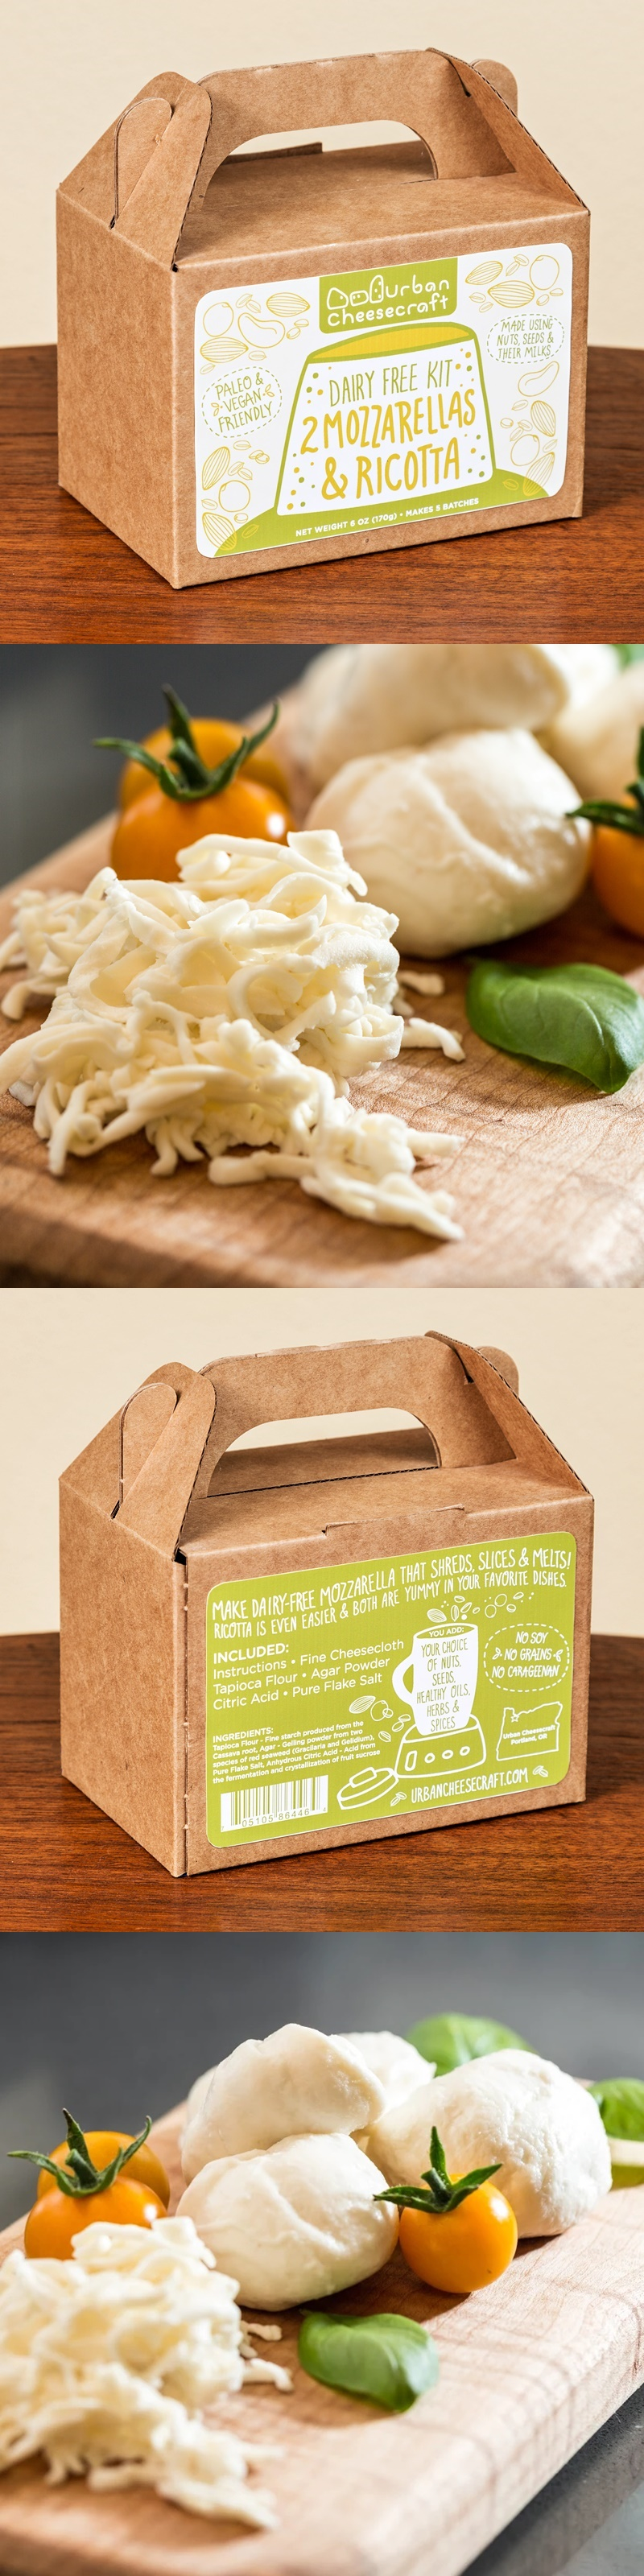 Urban Cheesecraft Dairy-Free Mozzarella & Ricotta Kit - make your own dairy-free cheese! Options for vegan and paleo.